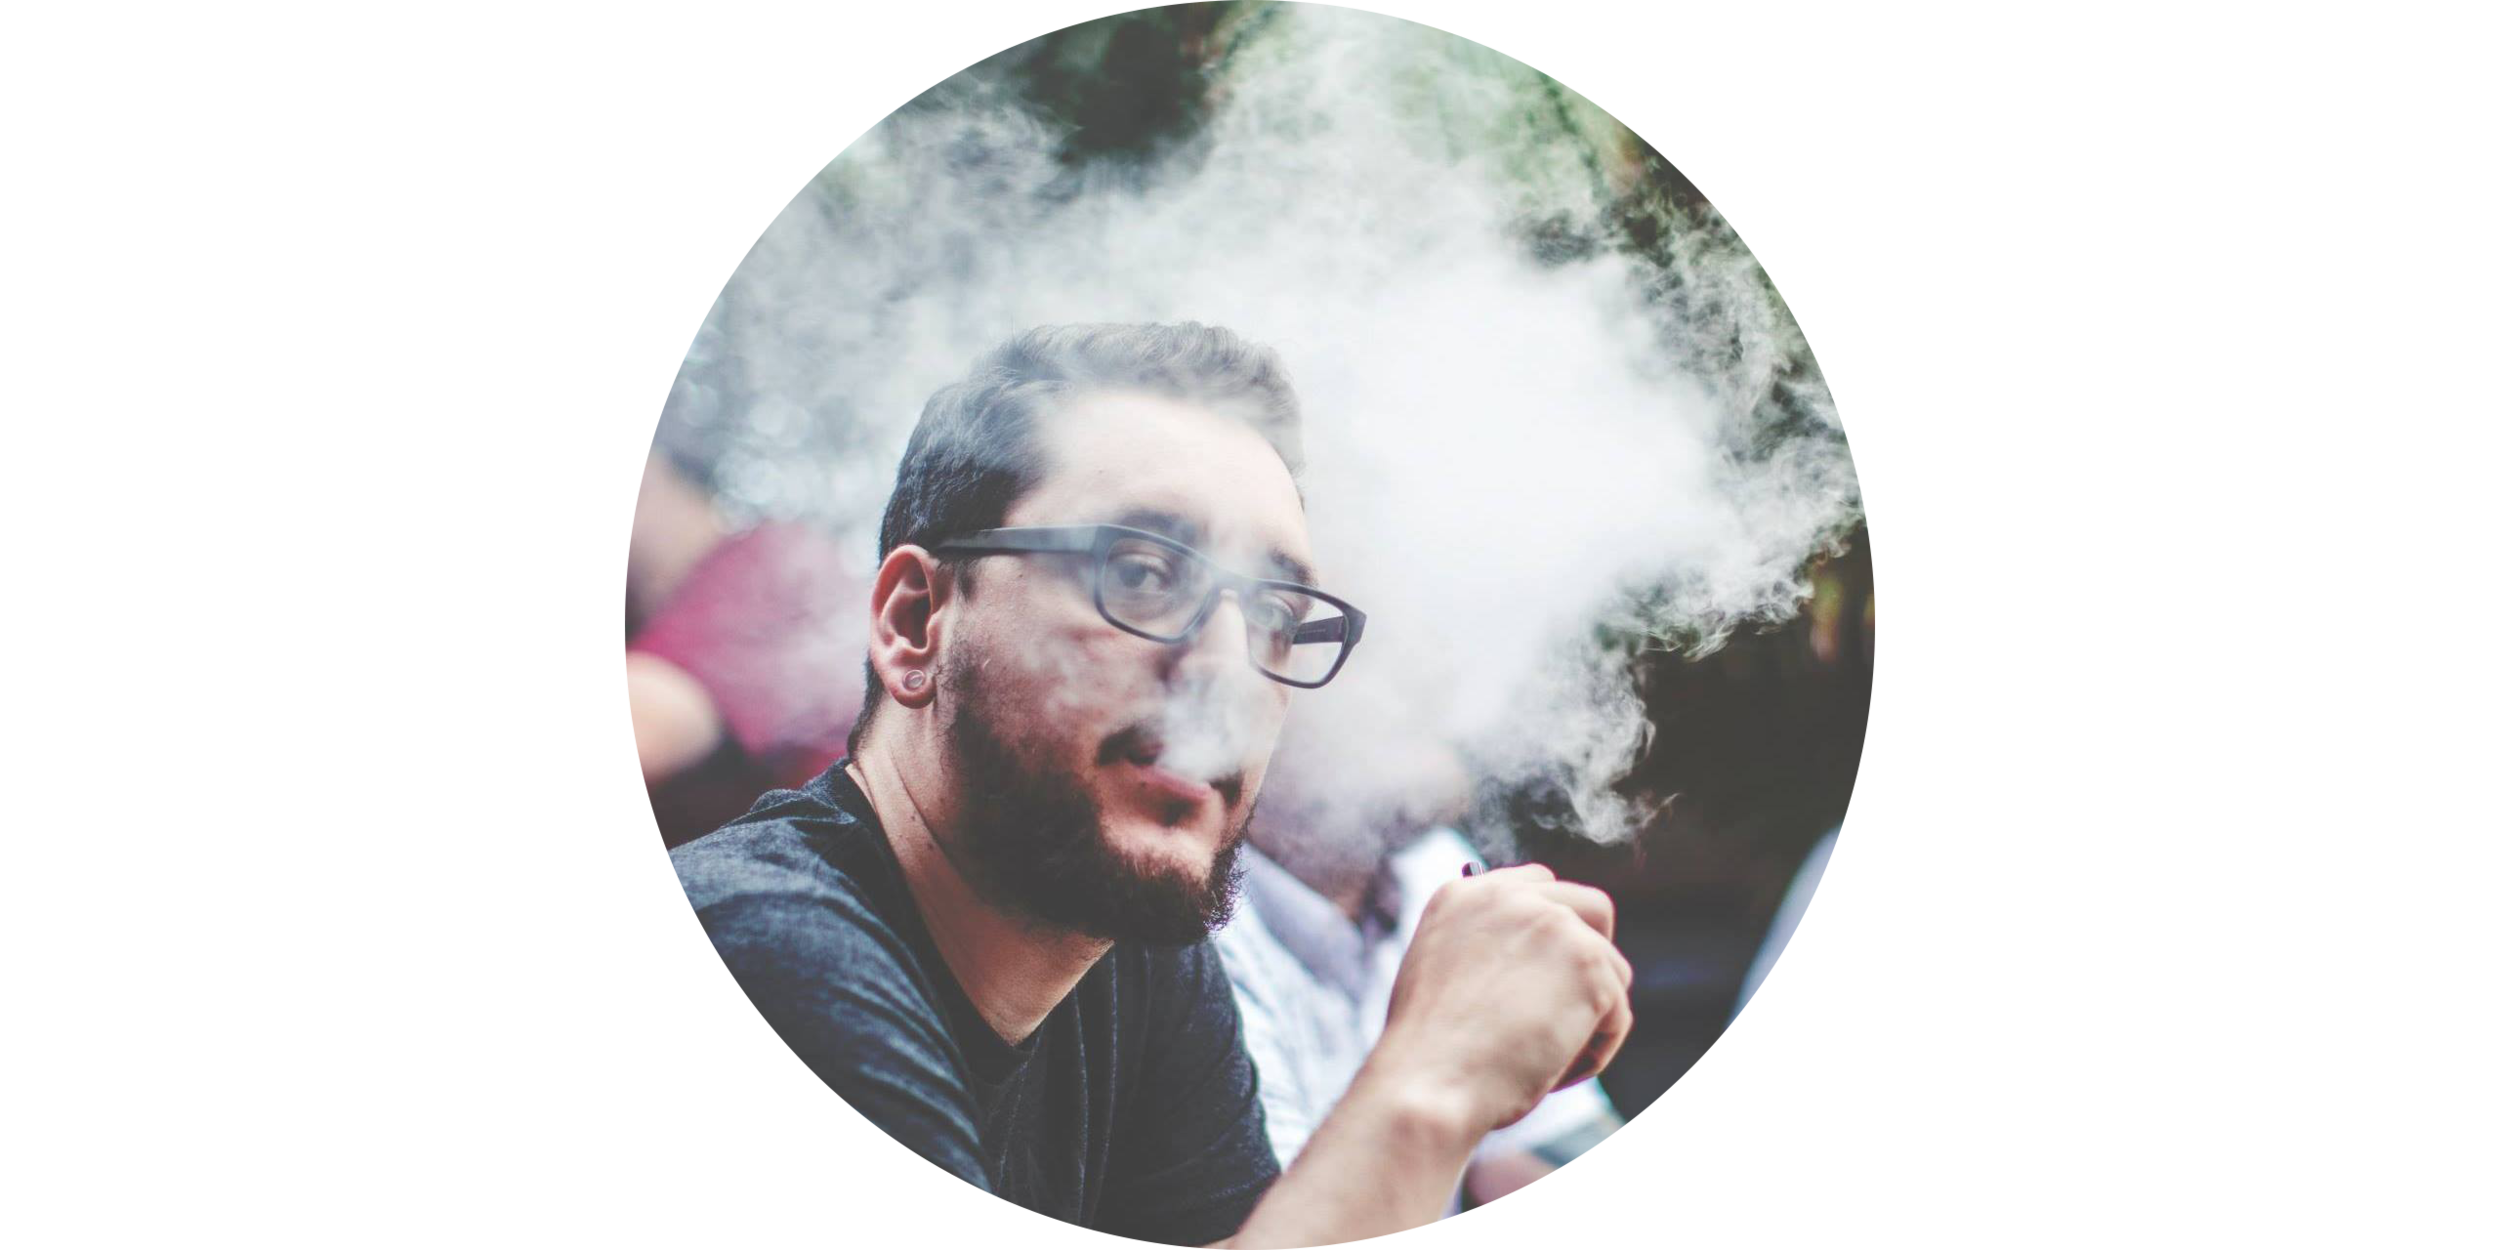 avatar-vape-circle-wide@2x.png